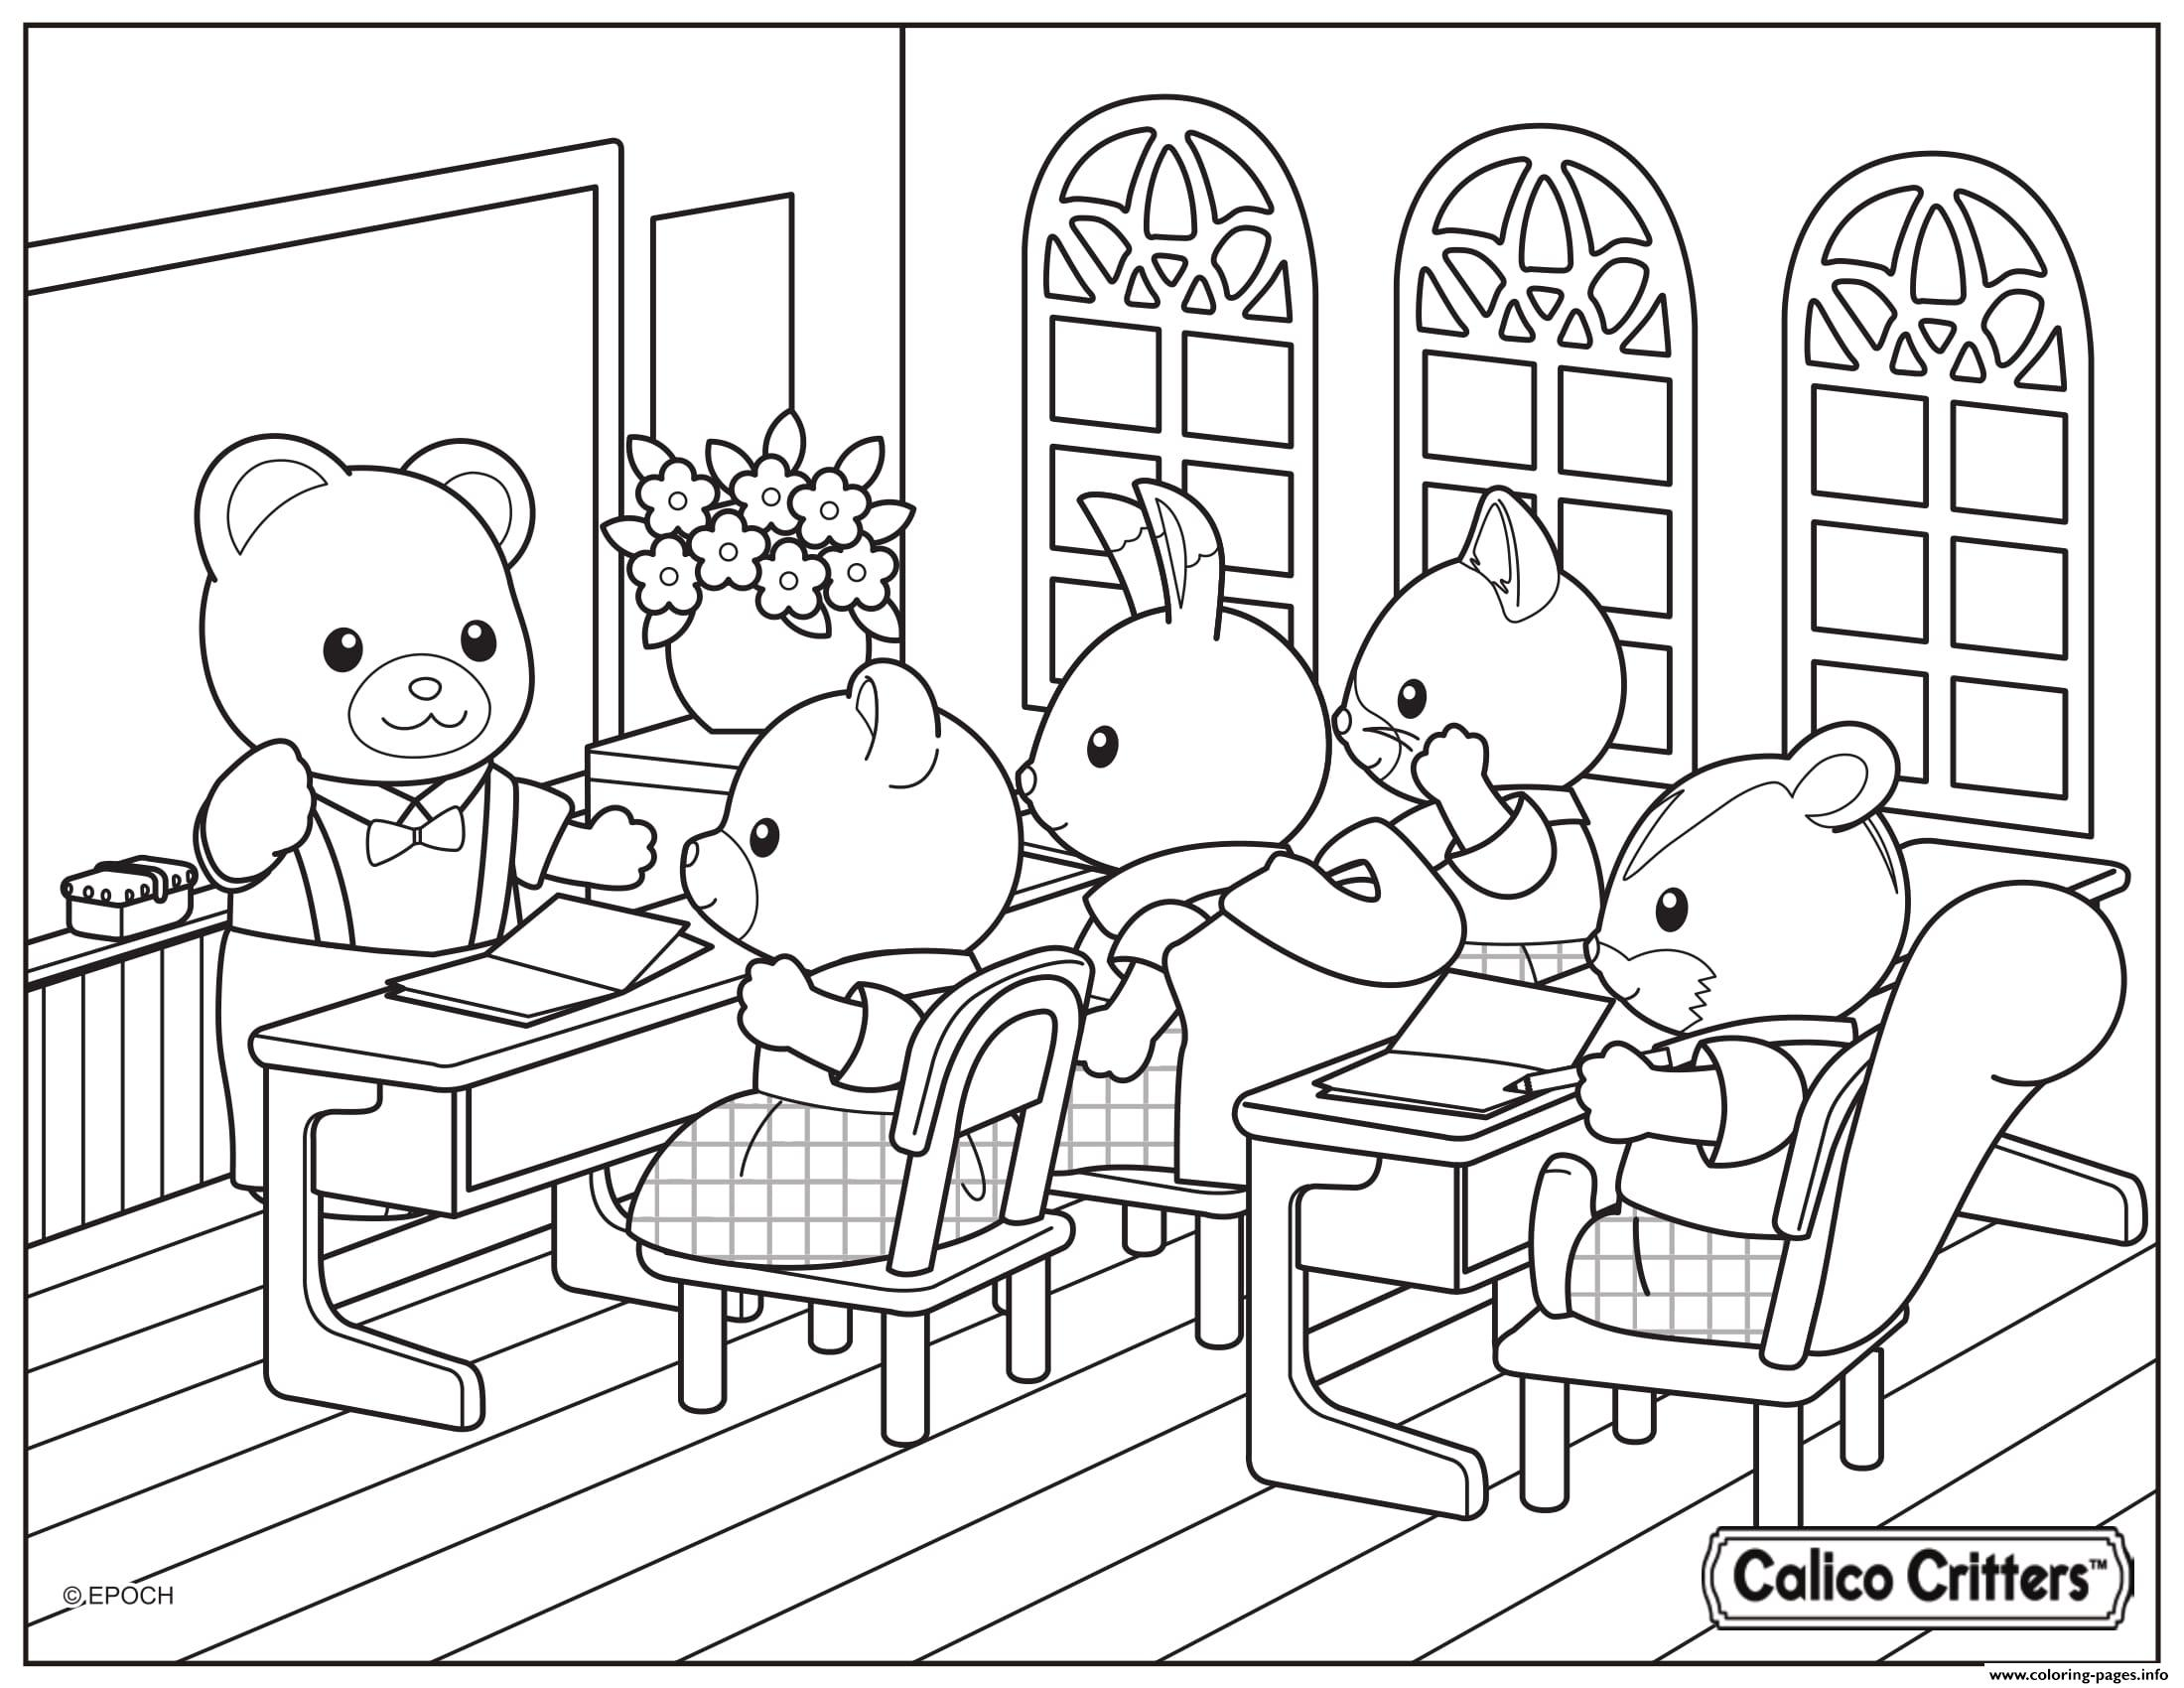 Calico Critters School Learning Coloring Pages Printable